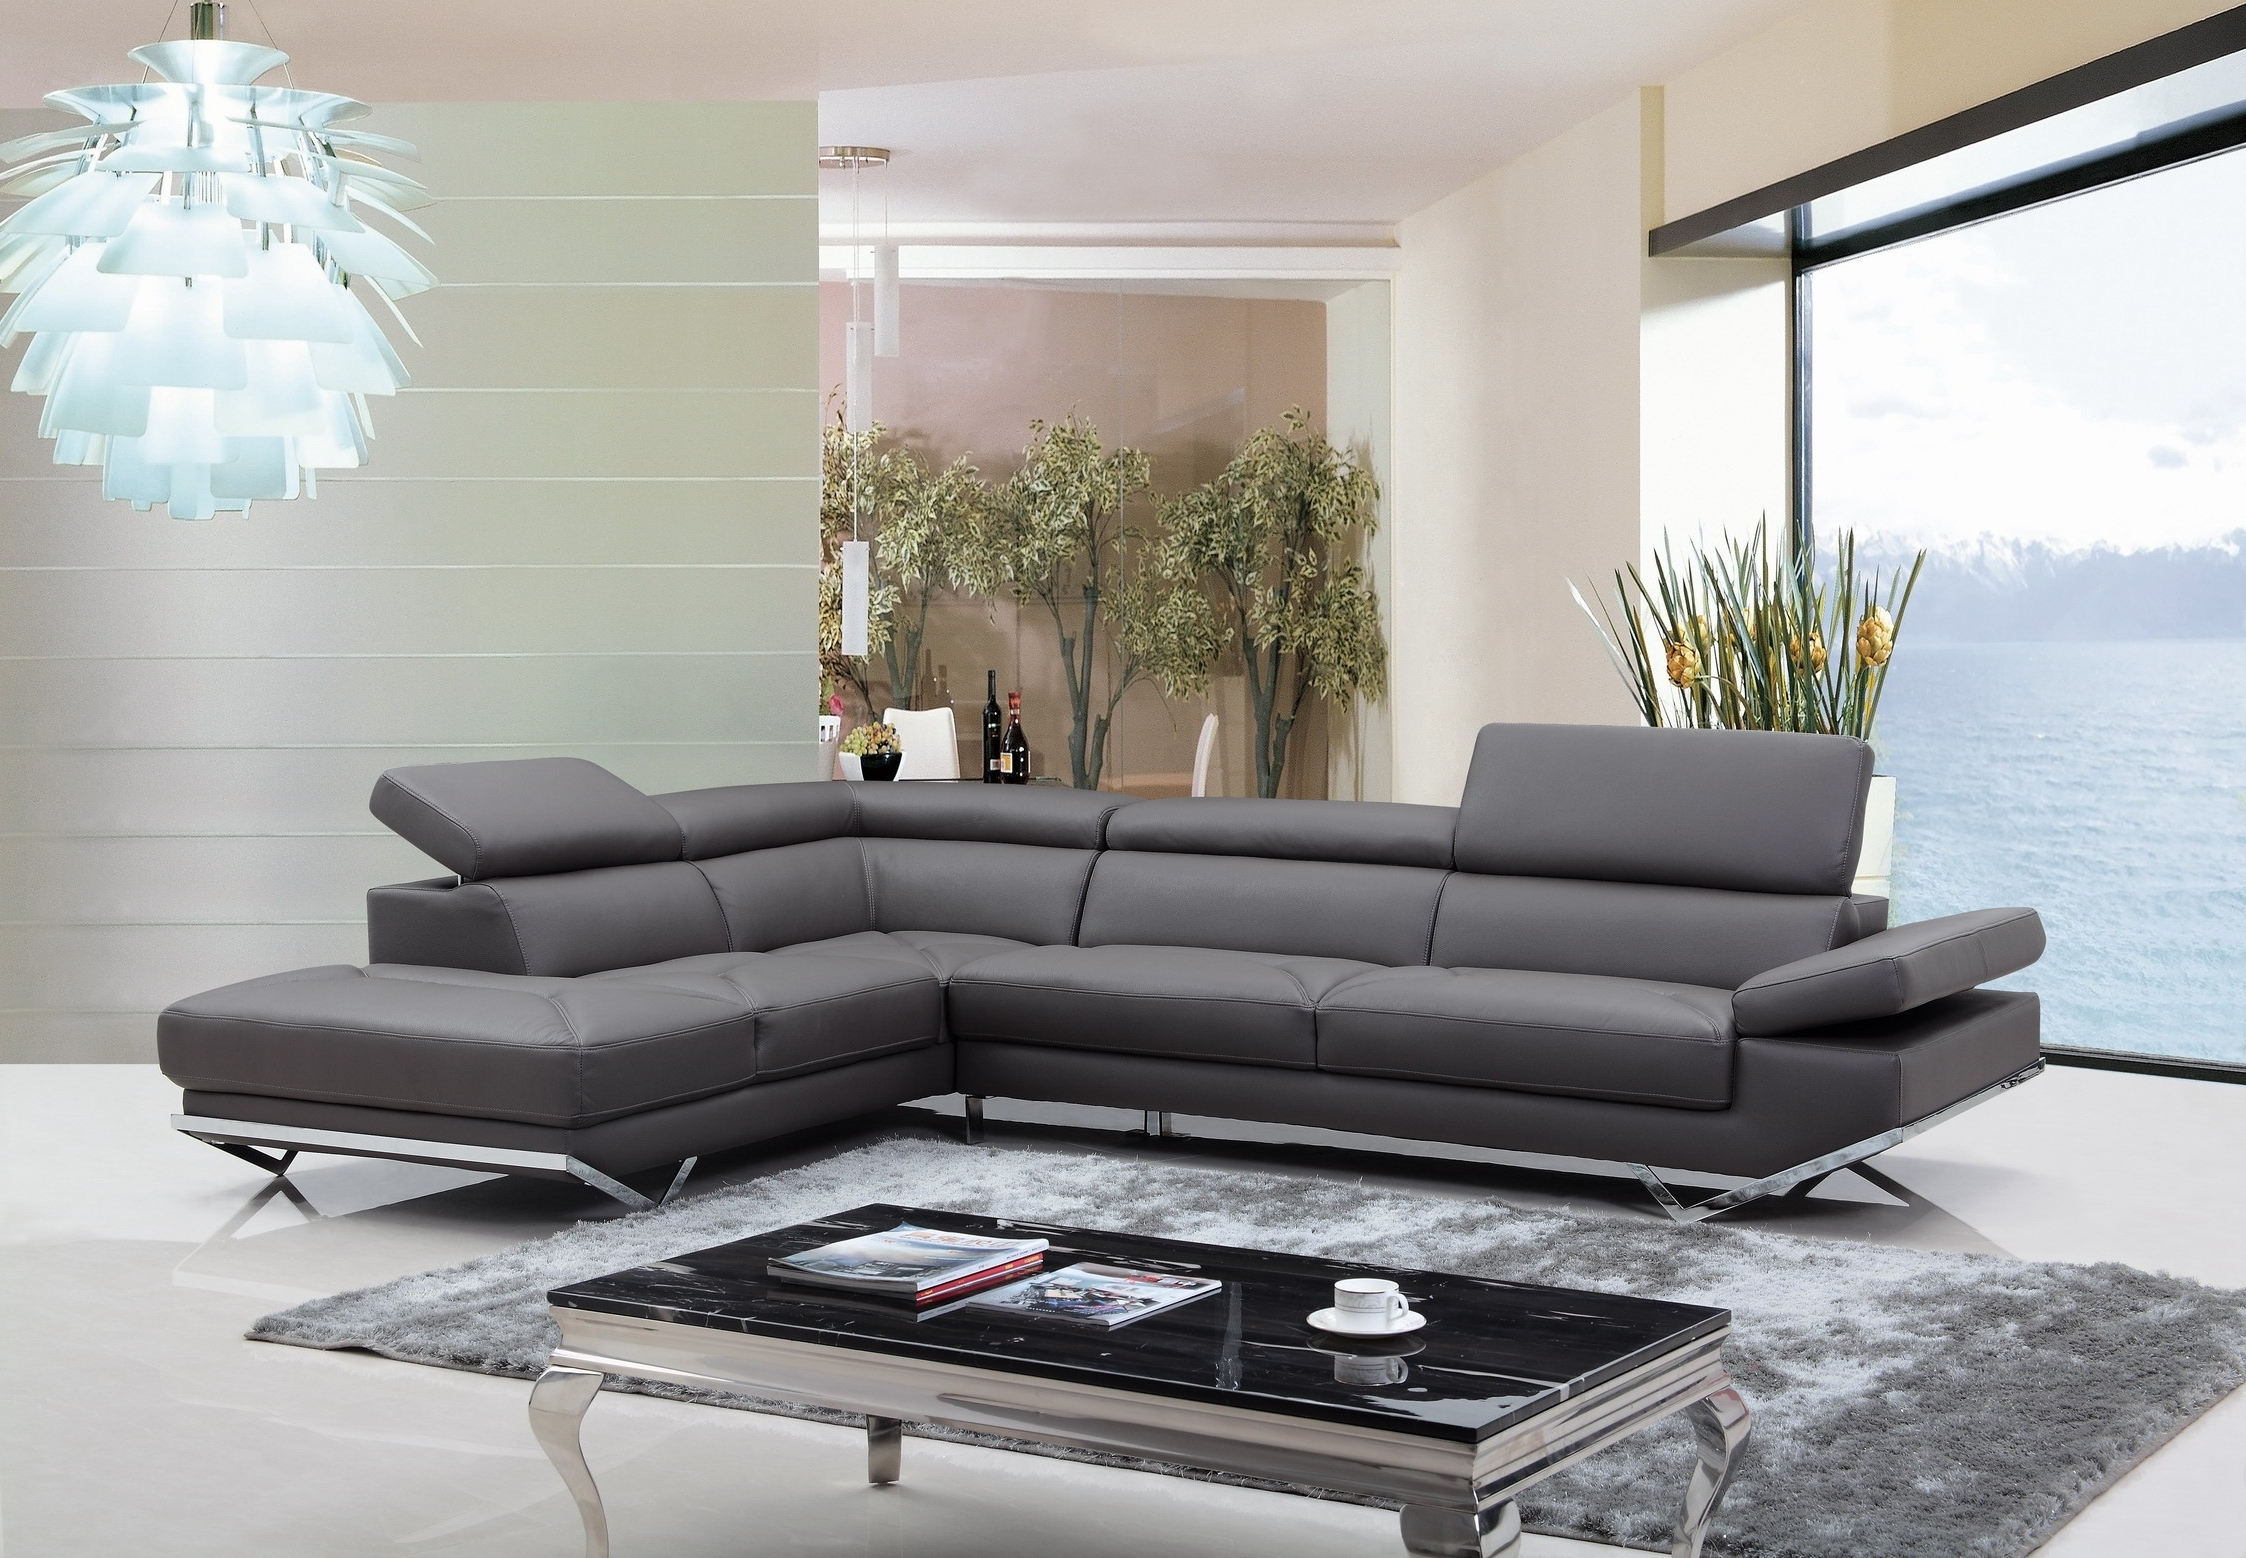 Casa Quebec Modern Dark Grey Eco Leather Sectional Sofa Regarding Most Popular Quebec Sectional Sofas (View 2 of 15)